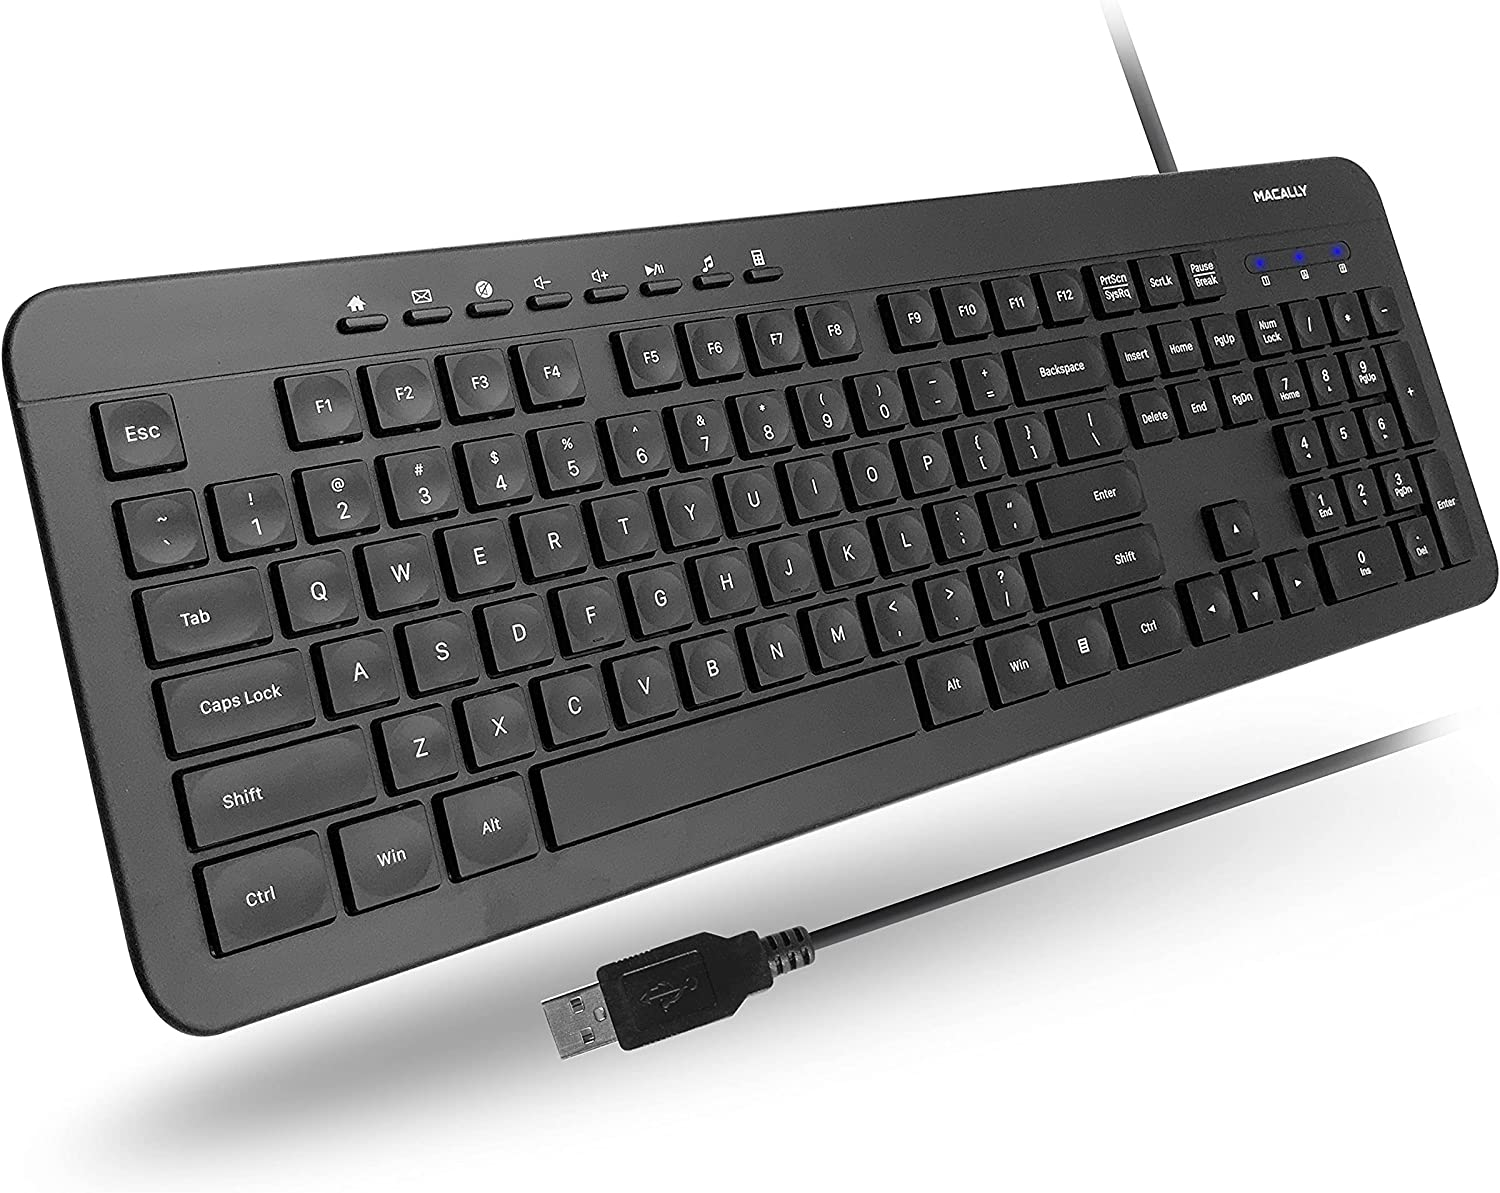 Macally USB Wired Keyboard for Laptop and Desktop - A Simple Computer Keyboard and Easy to Use USB Keyboard Wired with 5ft Cable, 112 Slim Keys, and Numeric Keypad - Plug and Play for Windows PC